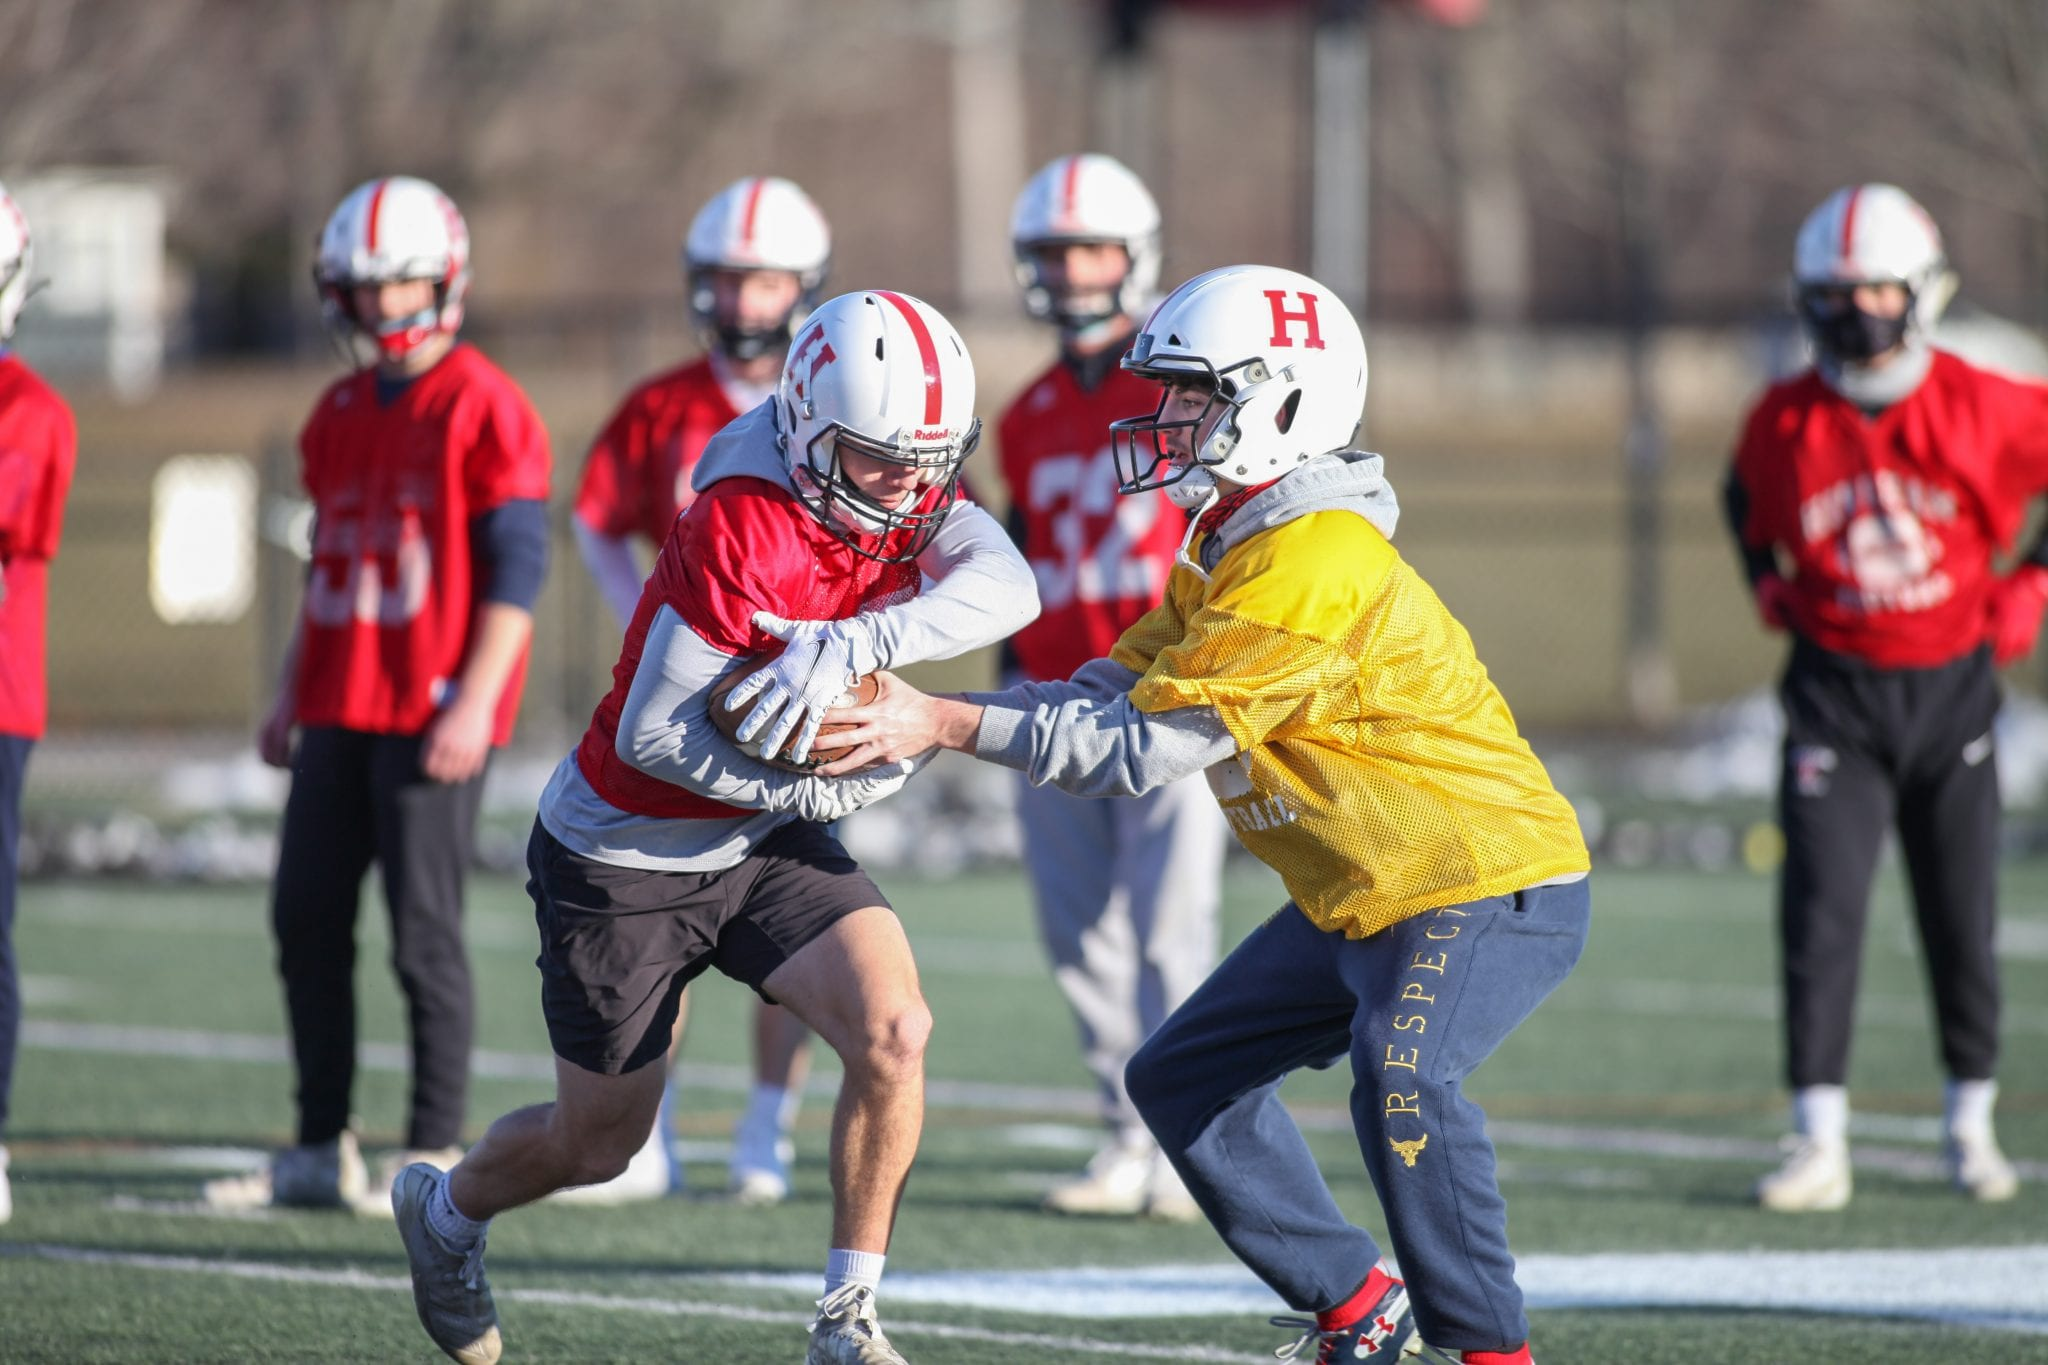 Junior quarterback Dylan Pierce getting in some reps during the first week of practice.